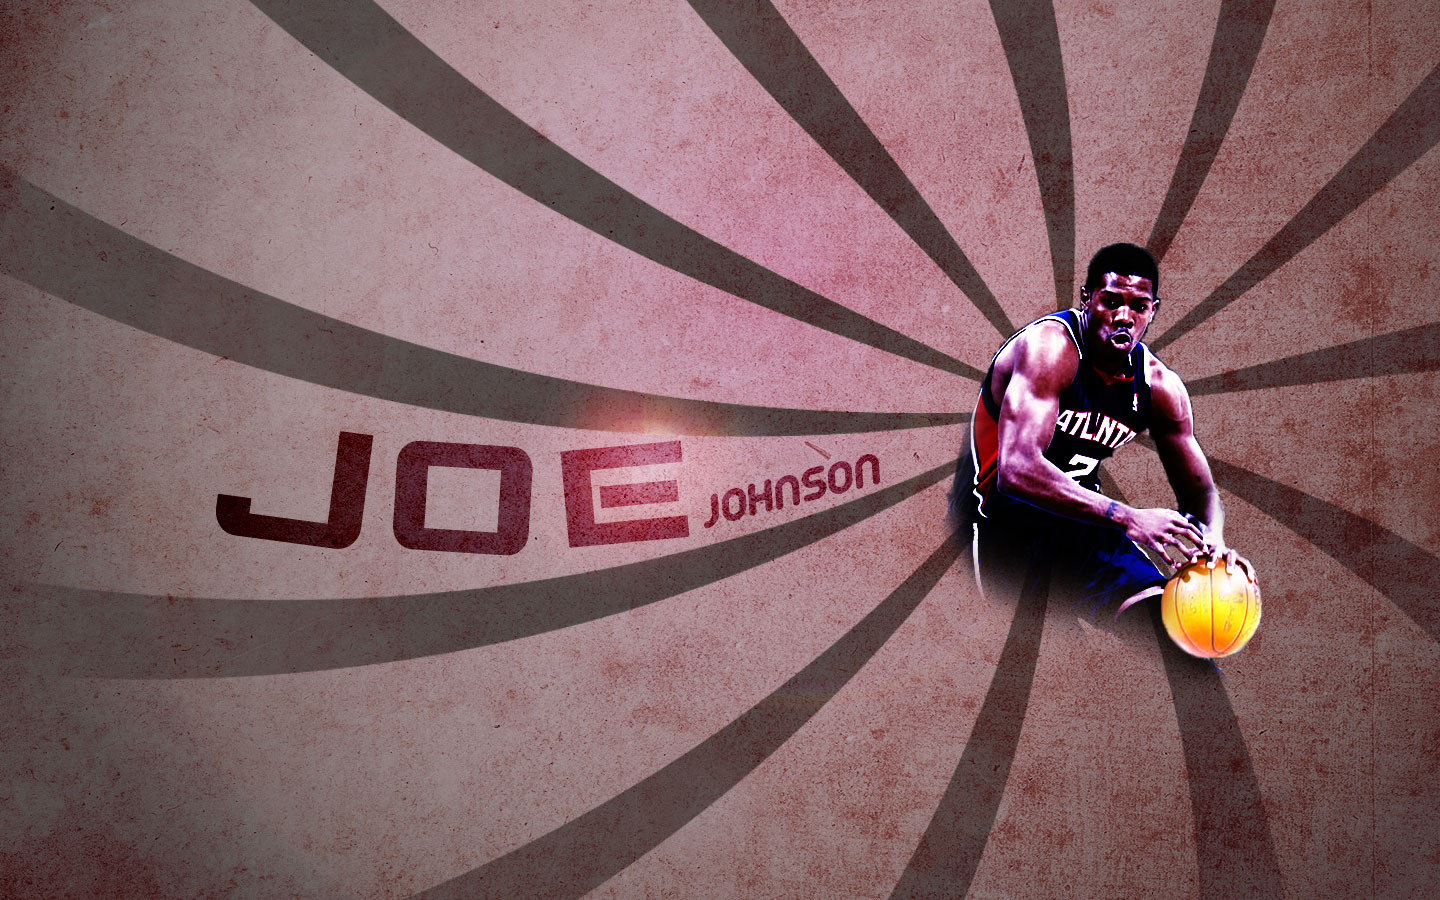 Joe Johnson Hawks Widescreen Wallpaper Basketball 1440x900